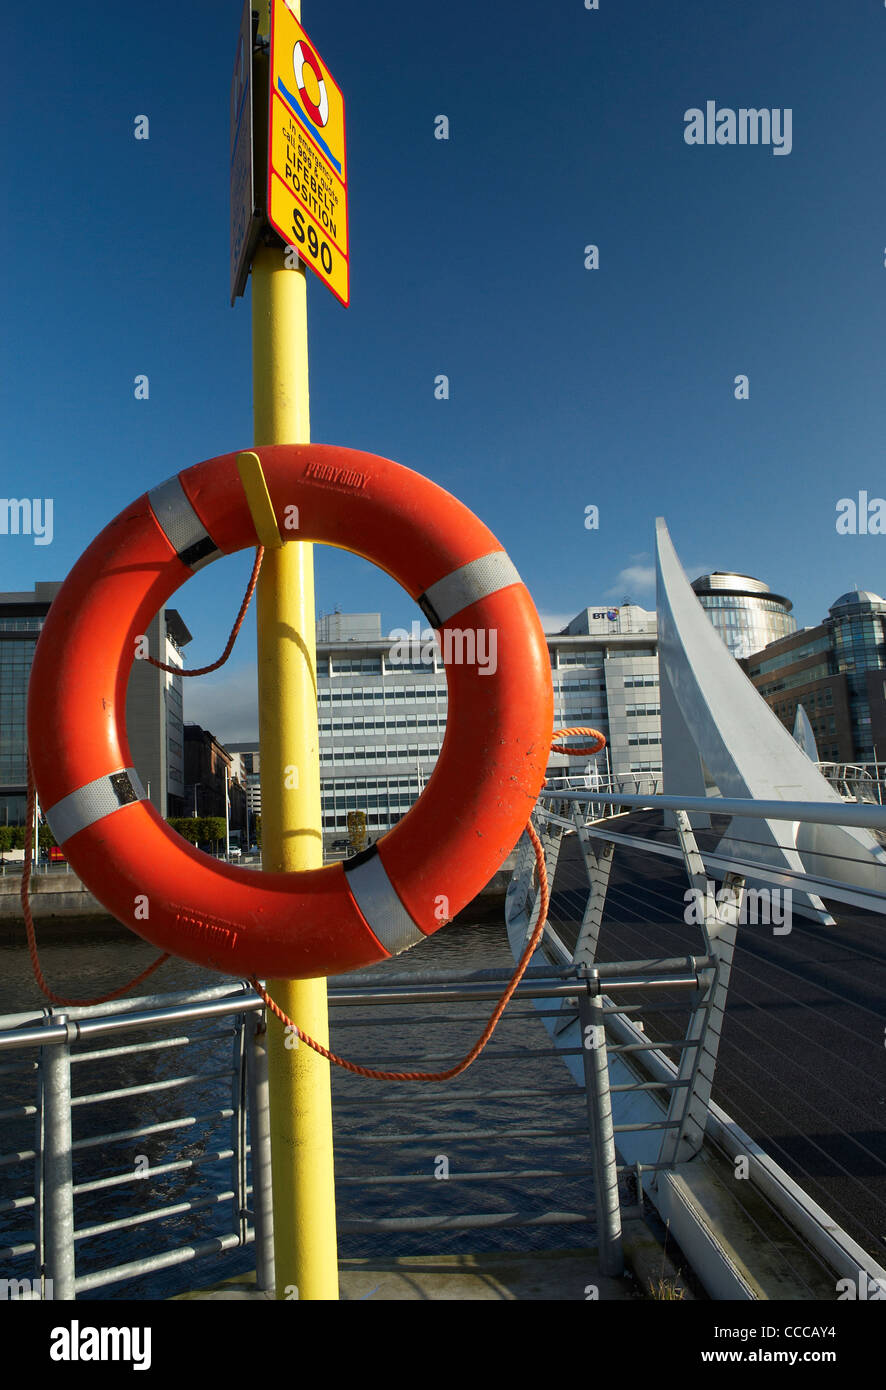 Lifebelt on the River Clyde at Glasgow City Centre - Stock Image